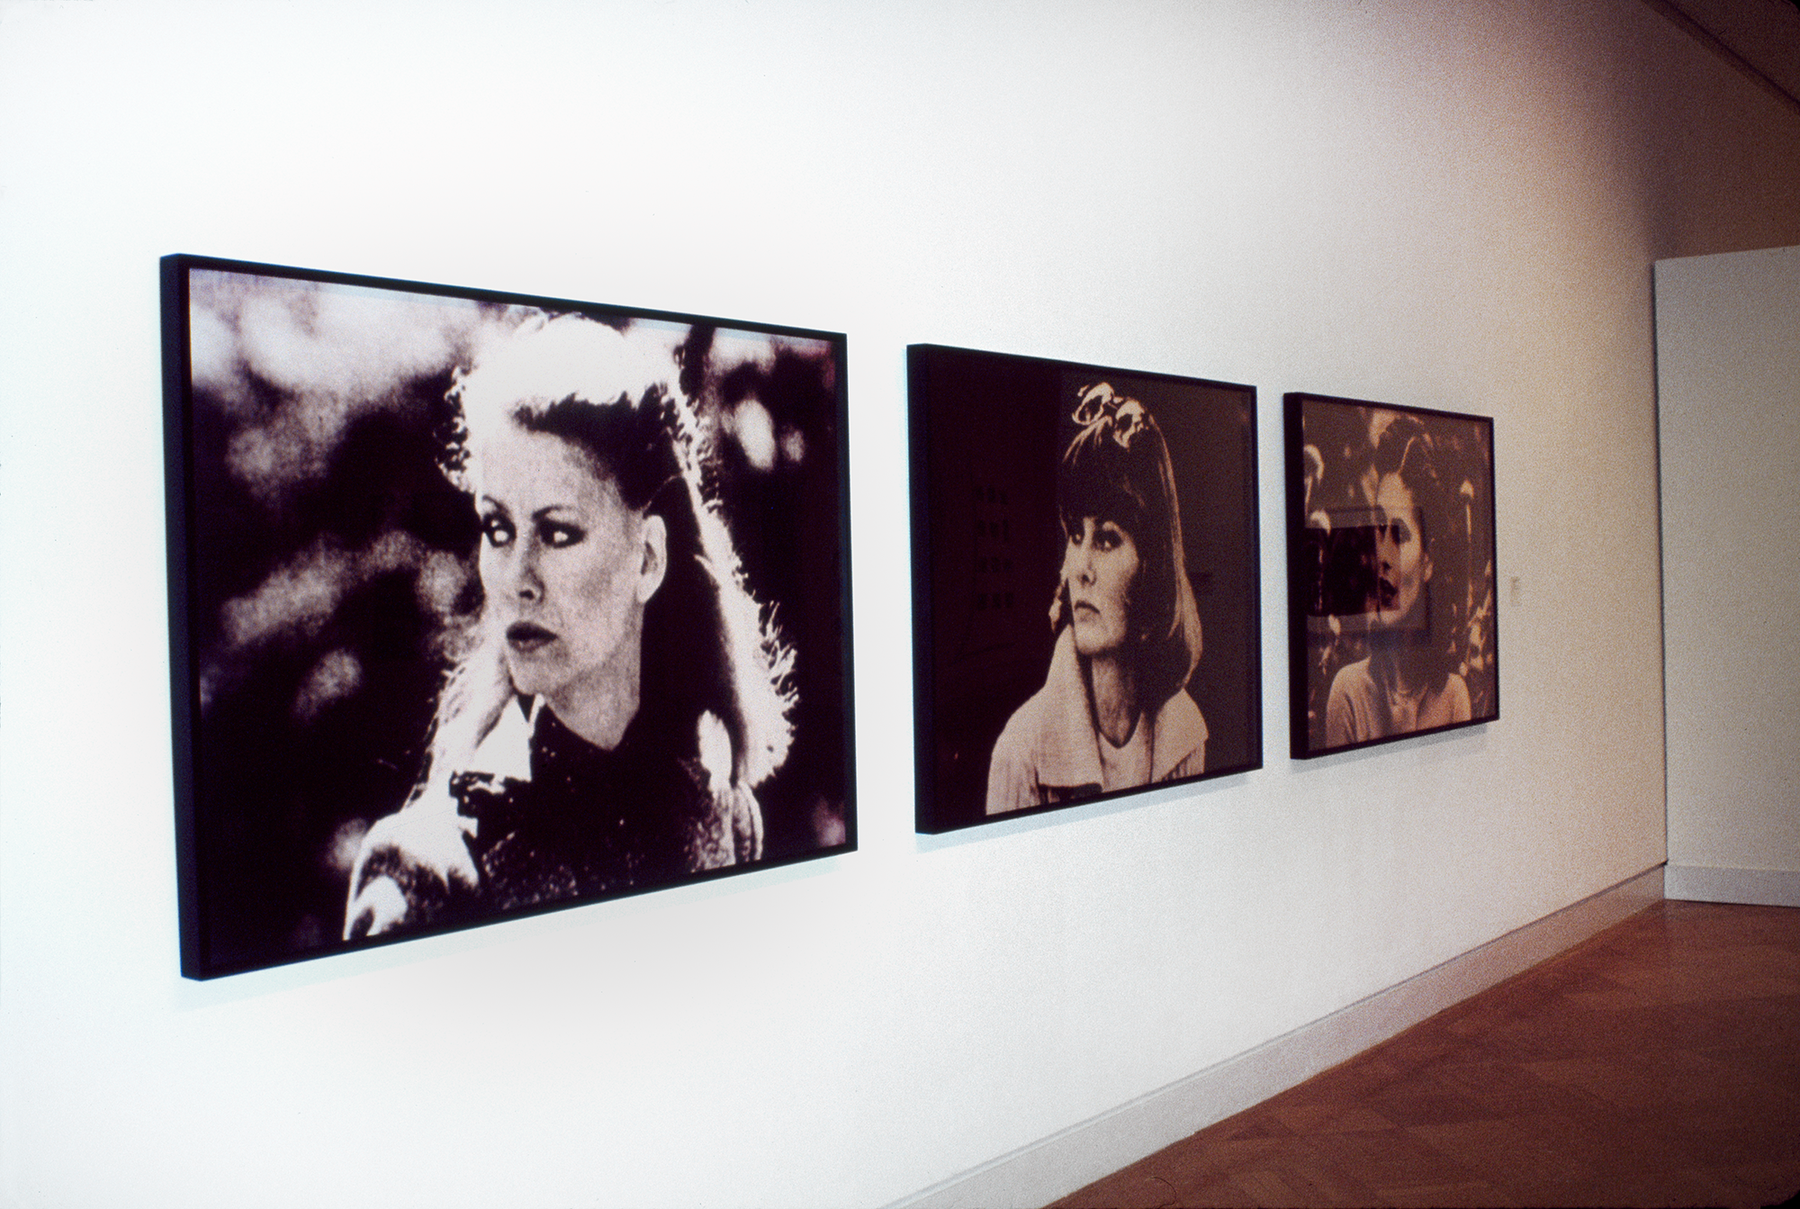 Three photographic portraits of women hung on a gallery wall